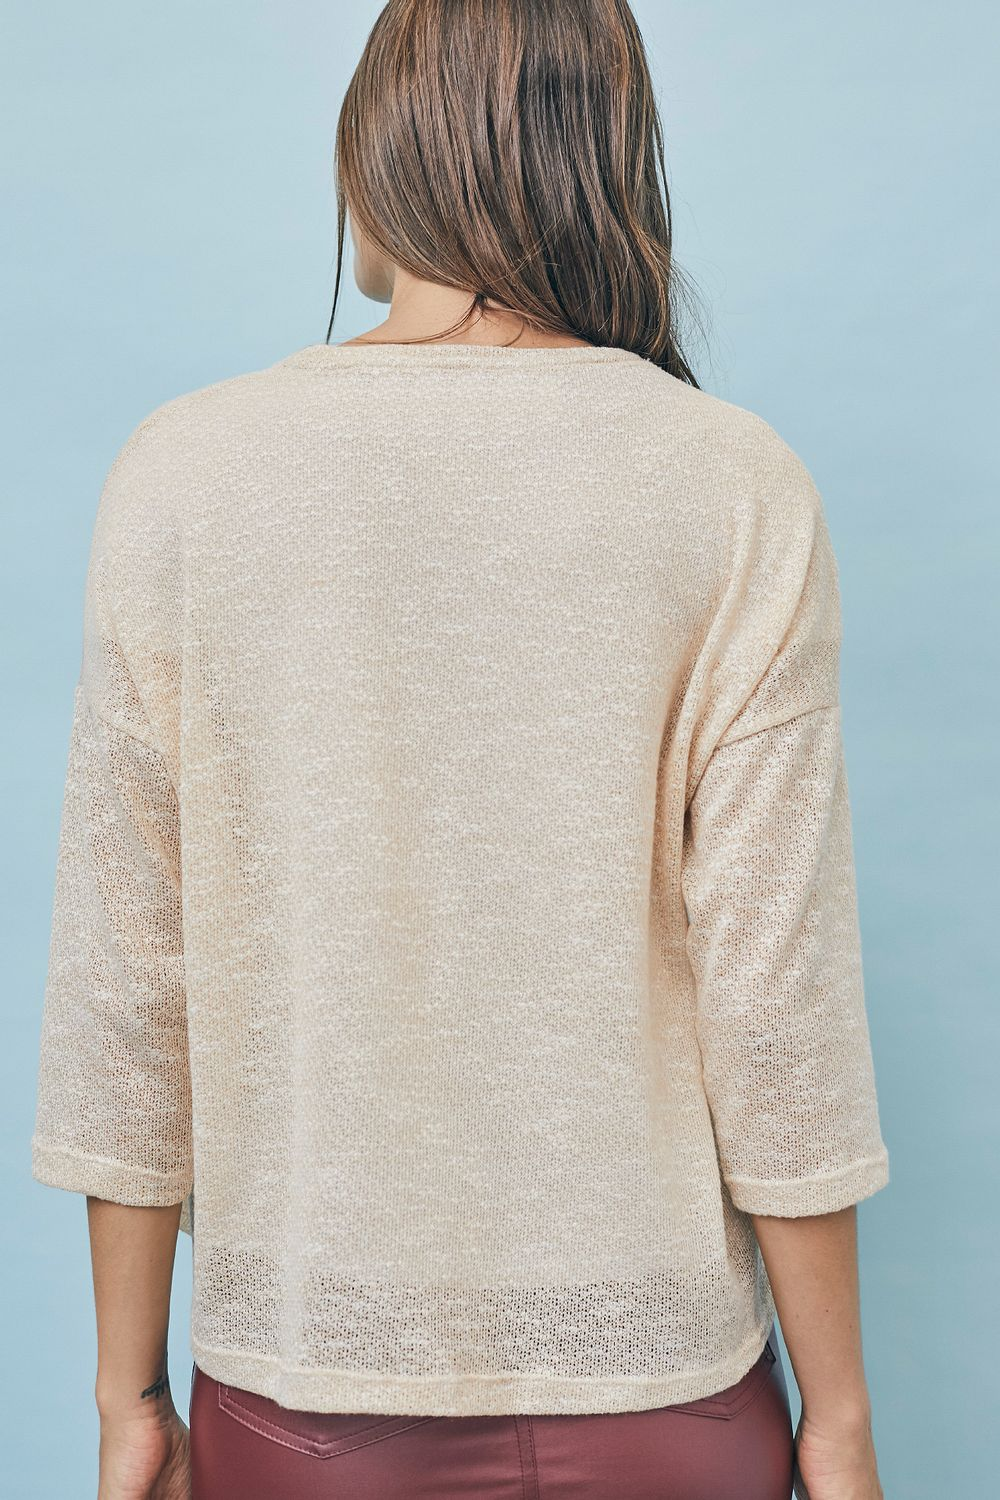 Sweater-Tifolk-Crudo-38